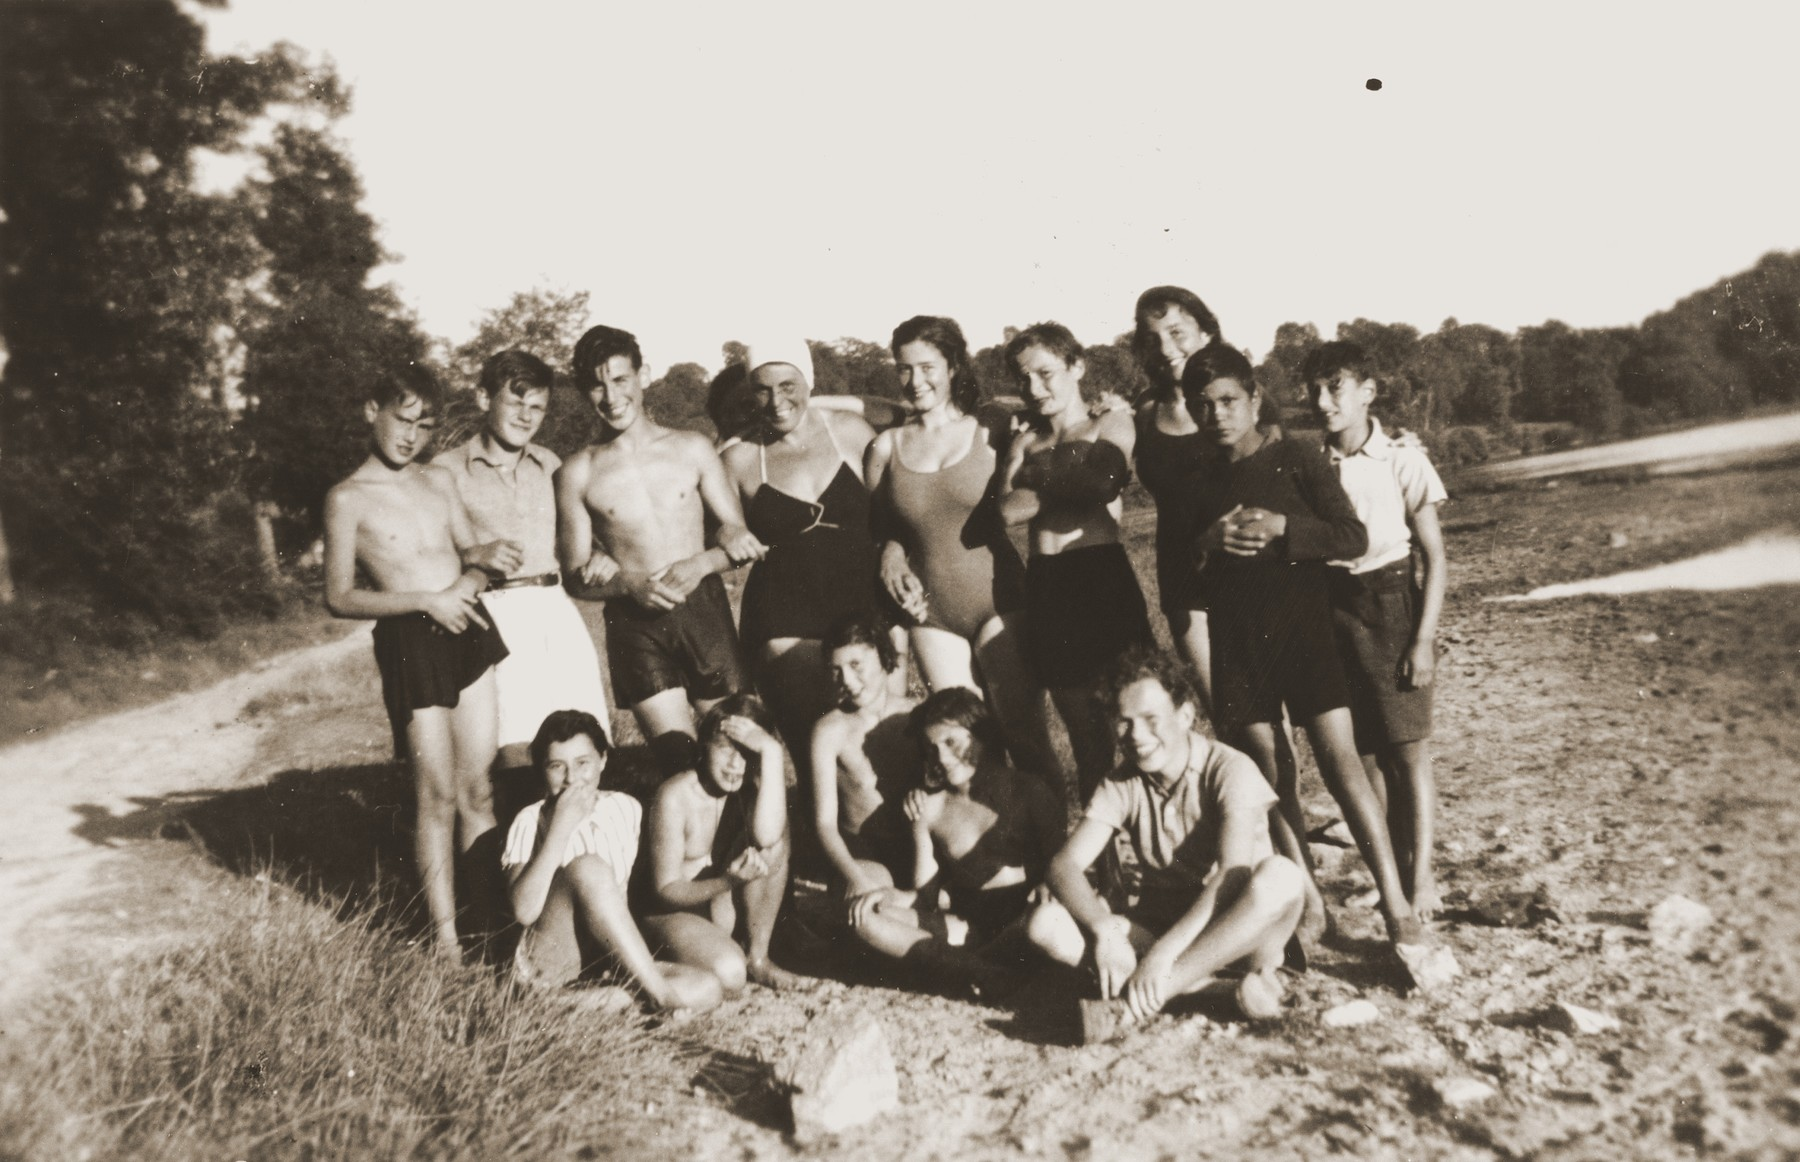 Group portrait of Jewish refugee children living at Château du Chaumont on an outing.    Among those pictured is Walter Karliner (back row, second from the left).  Kurt Siegfried Hirschhorn (back row, third from left).  Mrs. Schwartz (counselor, fourth from left).  Kurt Hirschhorn was deported in August 1942.